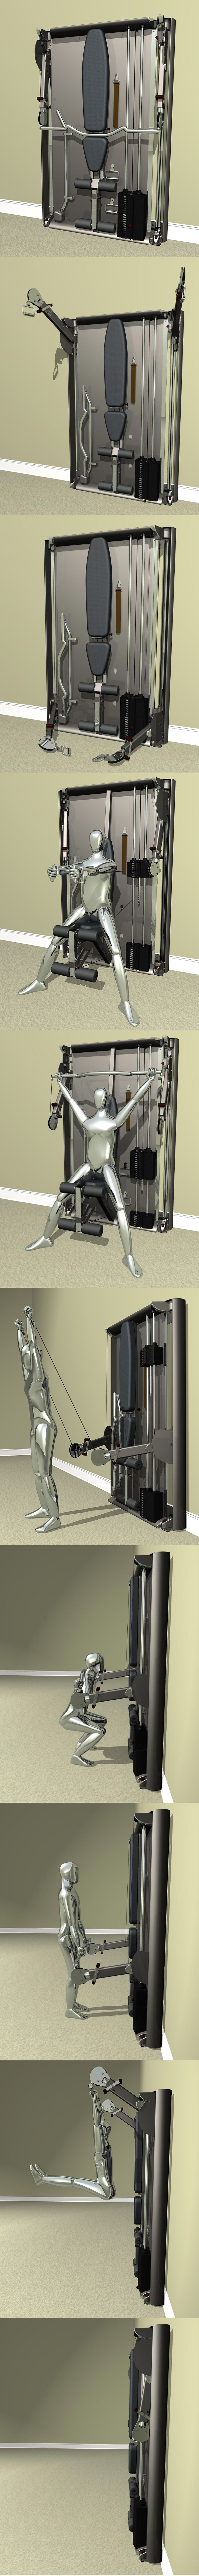 SlimGym is a sleek, futuristic commercial quality gym that can be positioned into innumerable positions to provide an unprecedented amount of exercise variation, all in an ultra-compact foot print of 4 square feet.  Free motion movements with the exercise bar or hand grips mimic the feel of free weights. Fast and efficient transitions between exercises and resistance levels allows for circuit training.  SlimGym is the first and last gym you will ever need or want.  The ultimate home gym